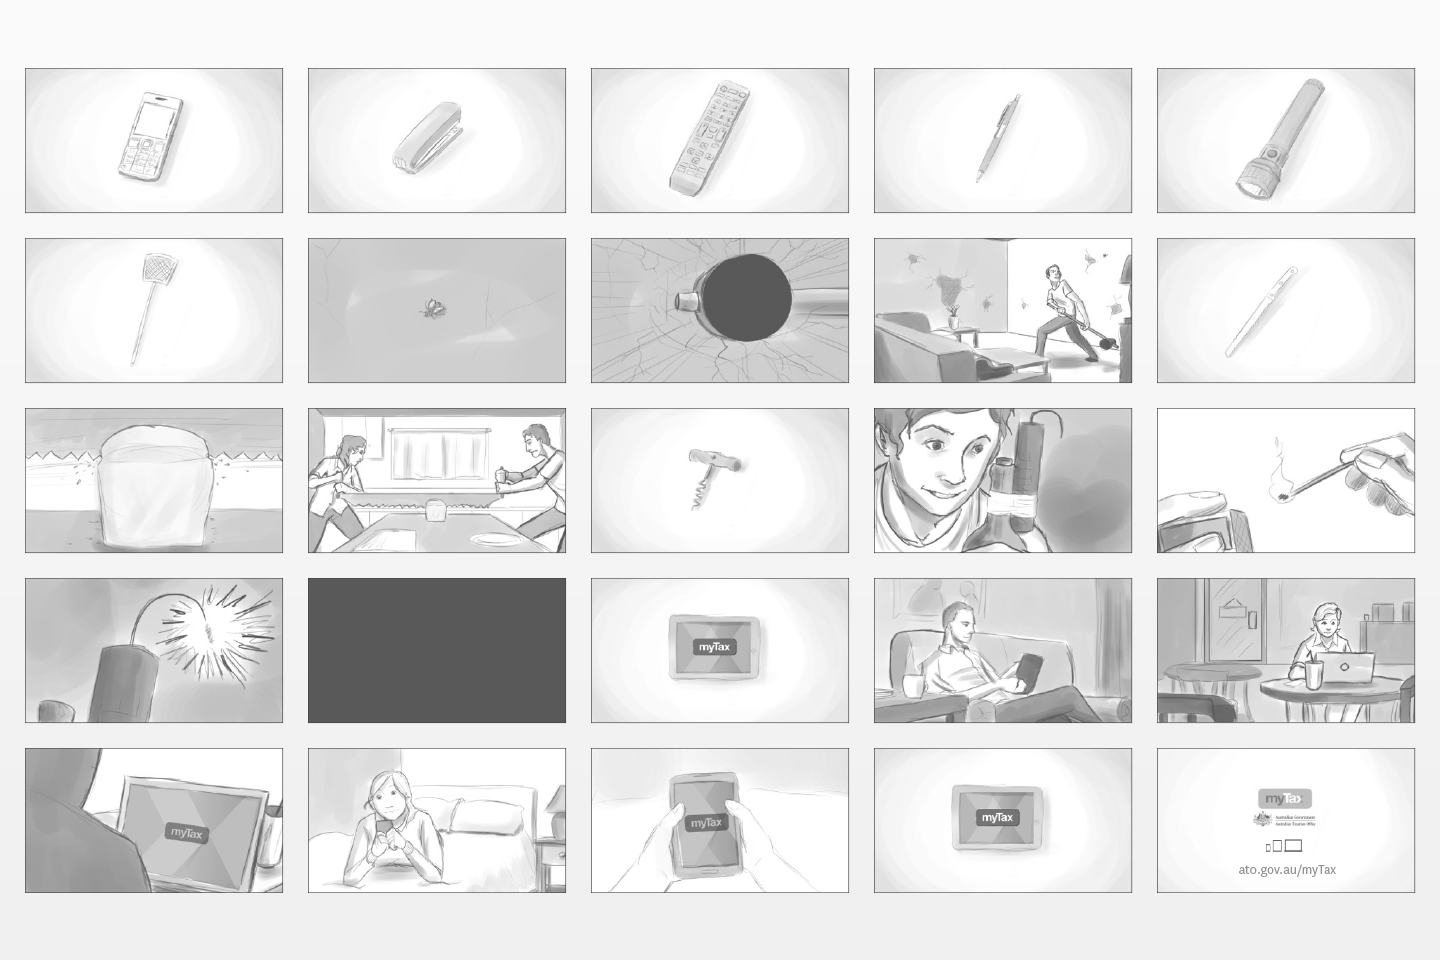 Hand-drawn storyboard